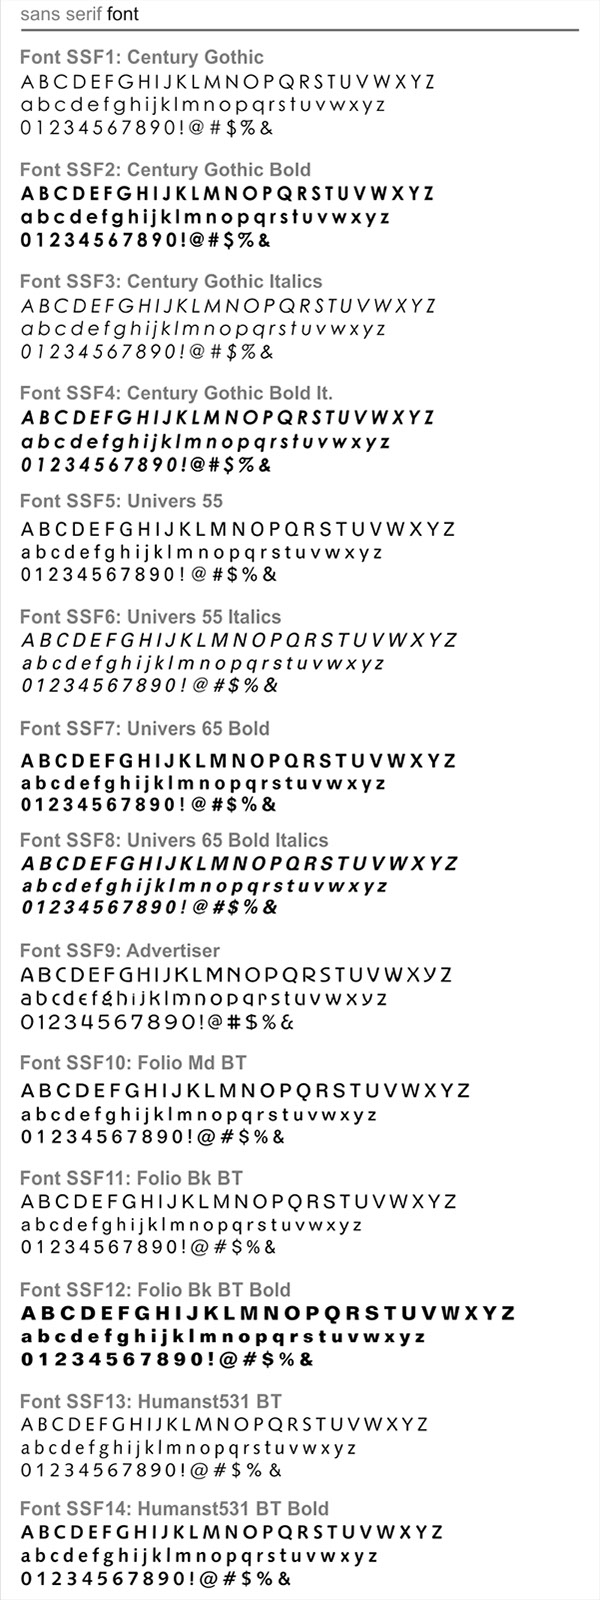 Engraving Solutions| Font List